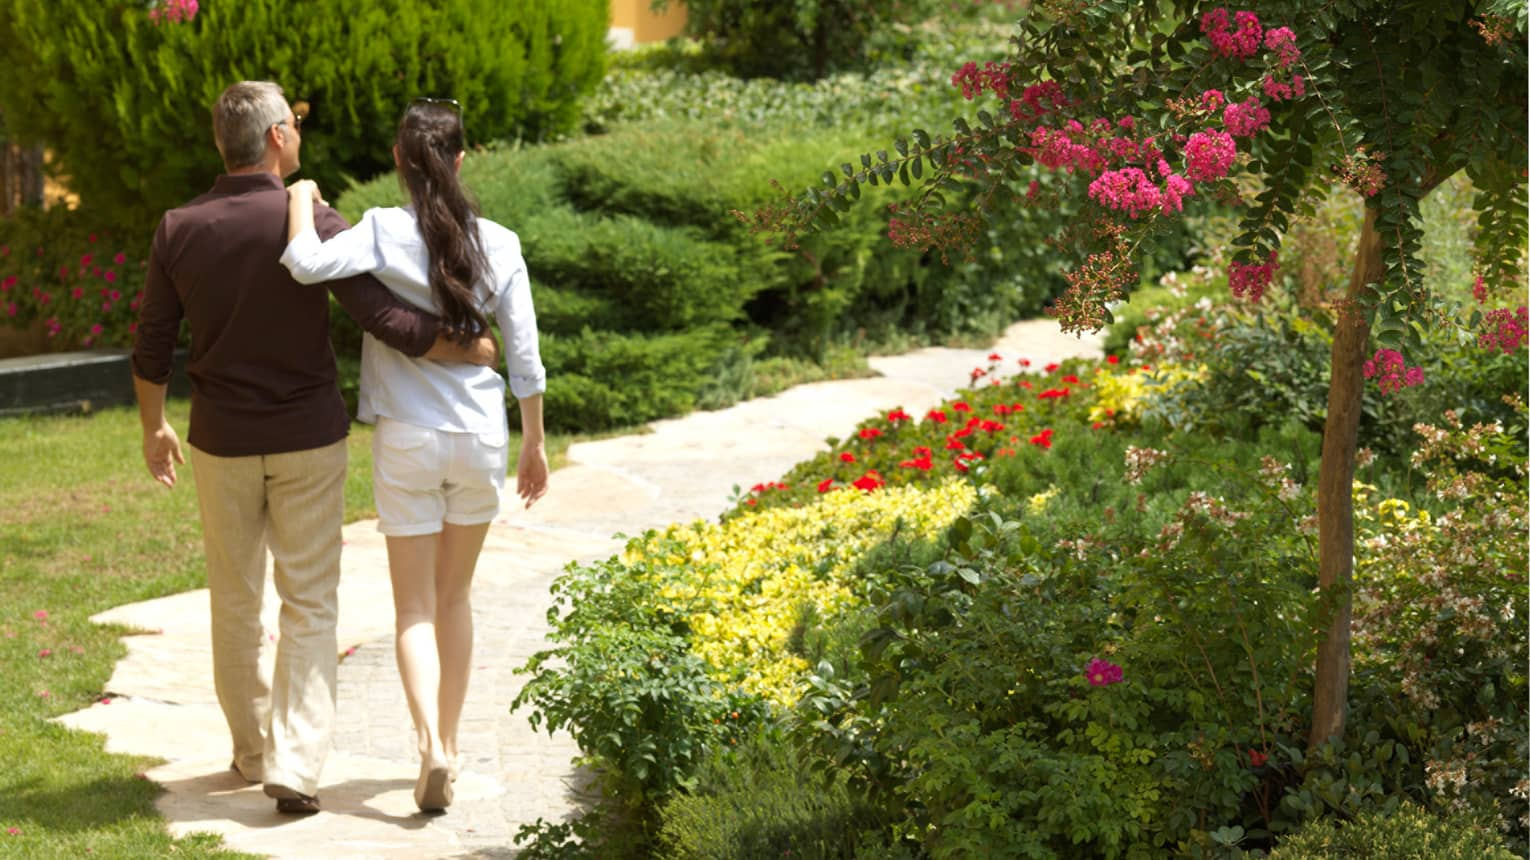 Back of man and woman walking with arms around each other through sunny garden